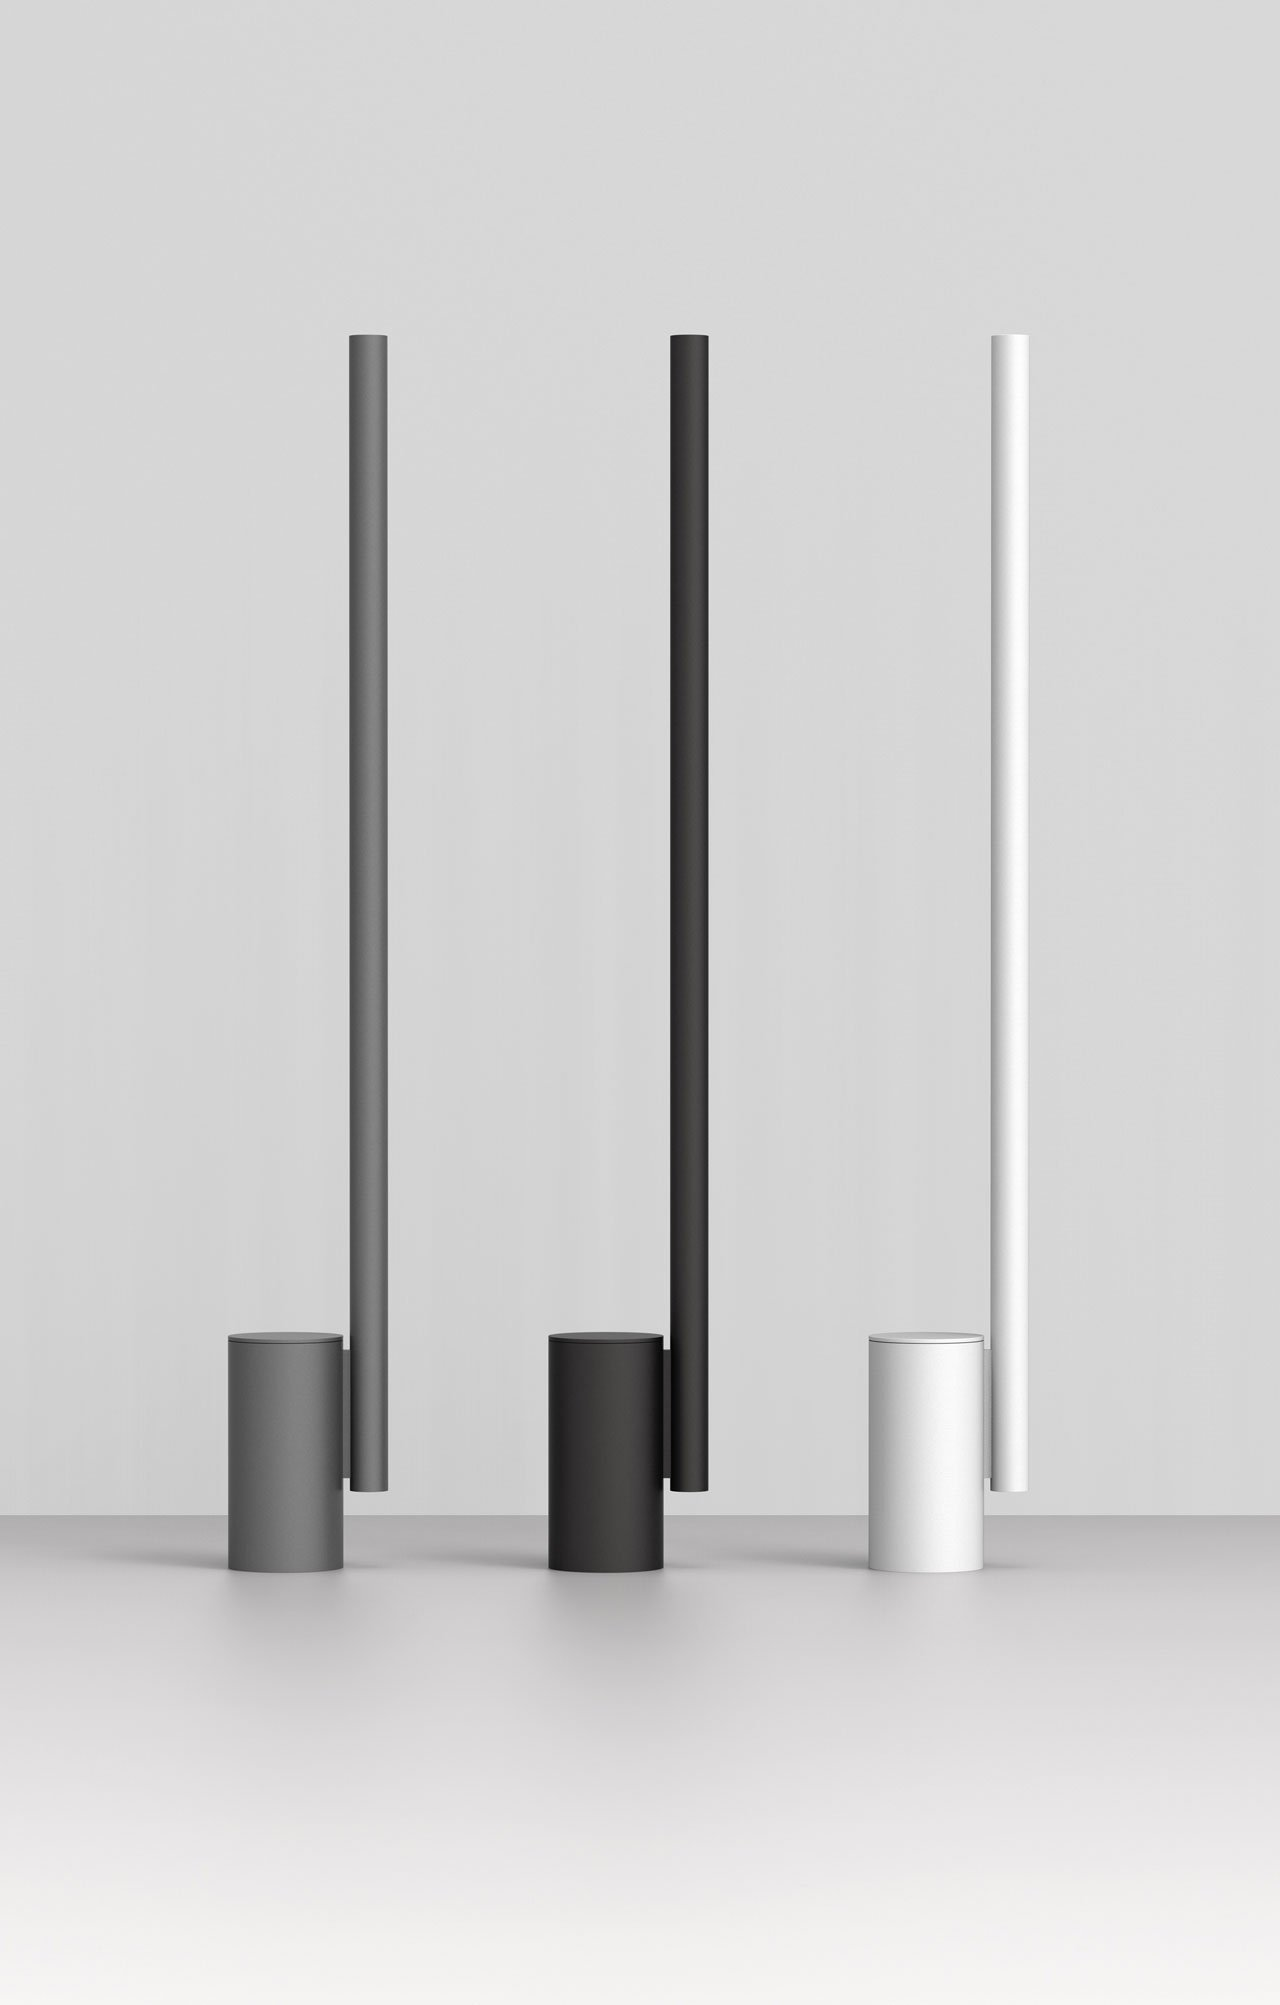 The w164 Alto high-tech uplighter by Wästberg in collaboration with Dirk Winkel.